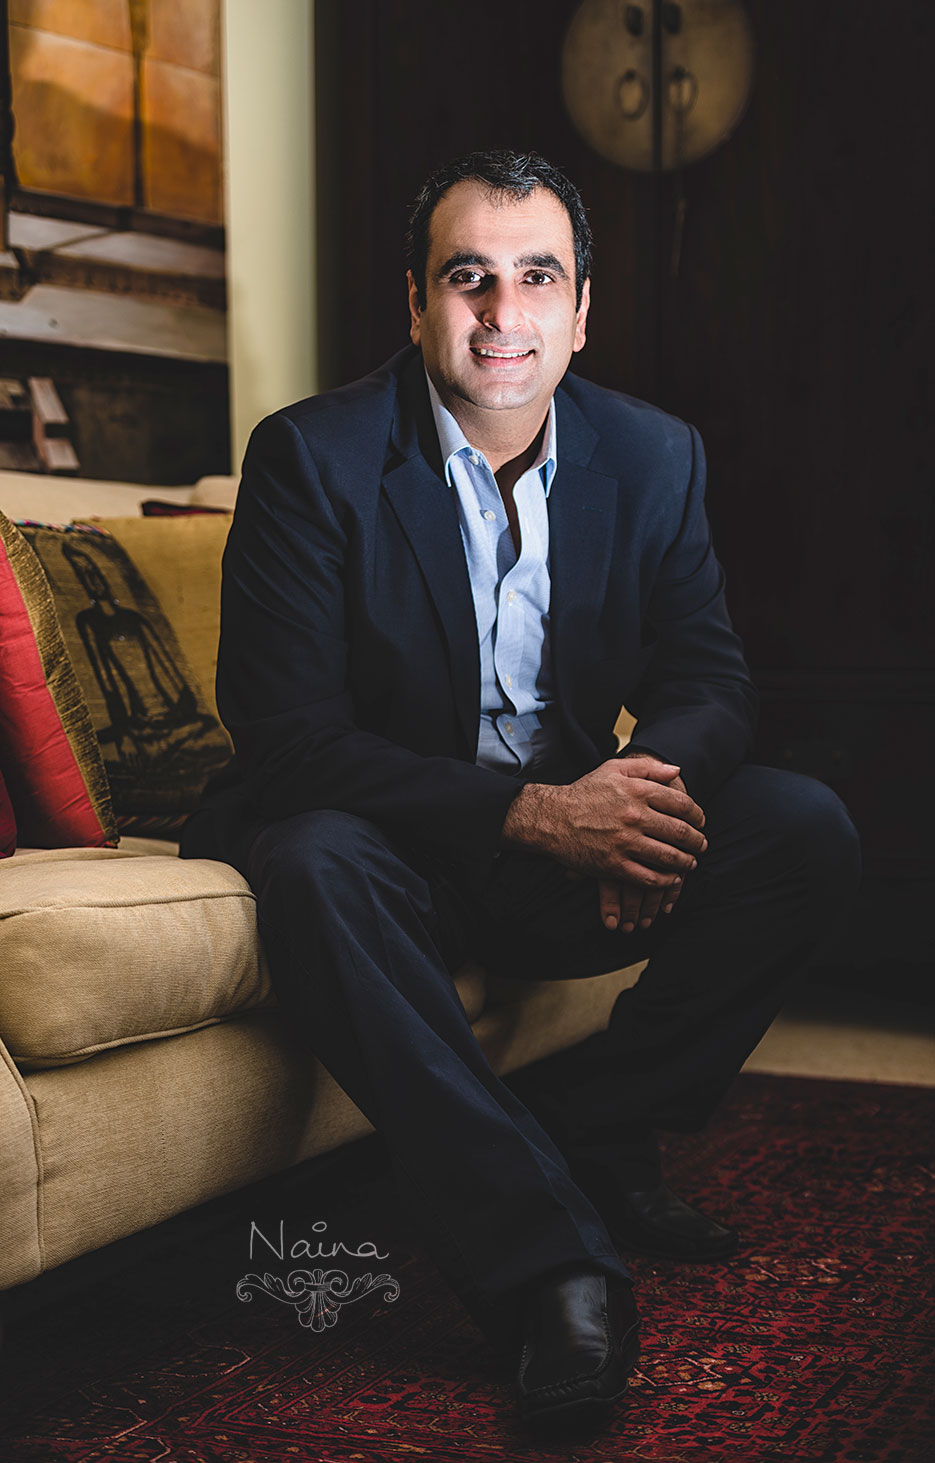 Anand Kapoor, Creative Services Support Group (CSSG), Corporate portraiture photography by photographer Naina Redhu